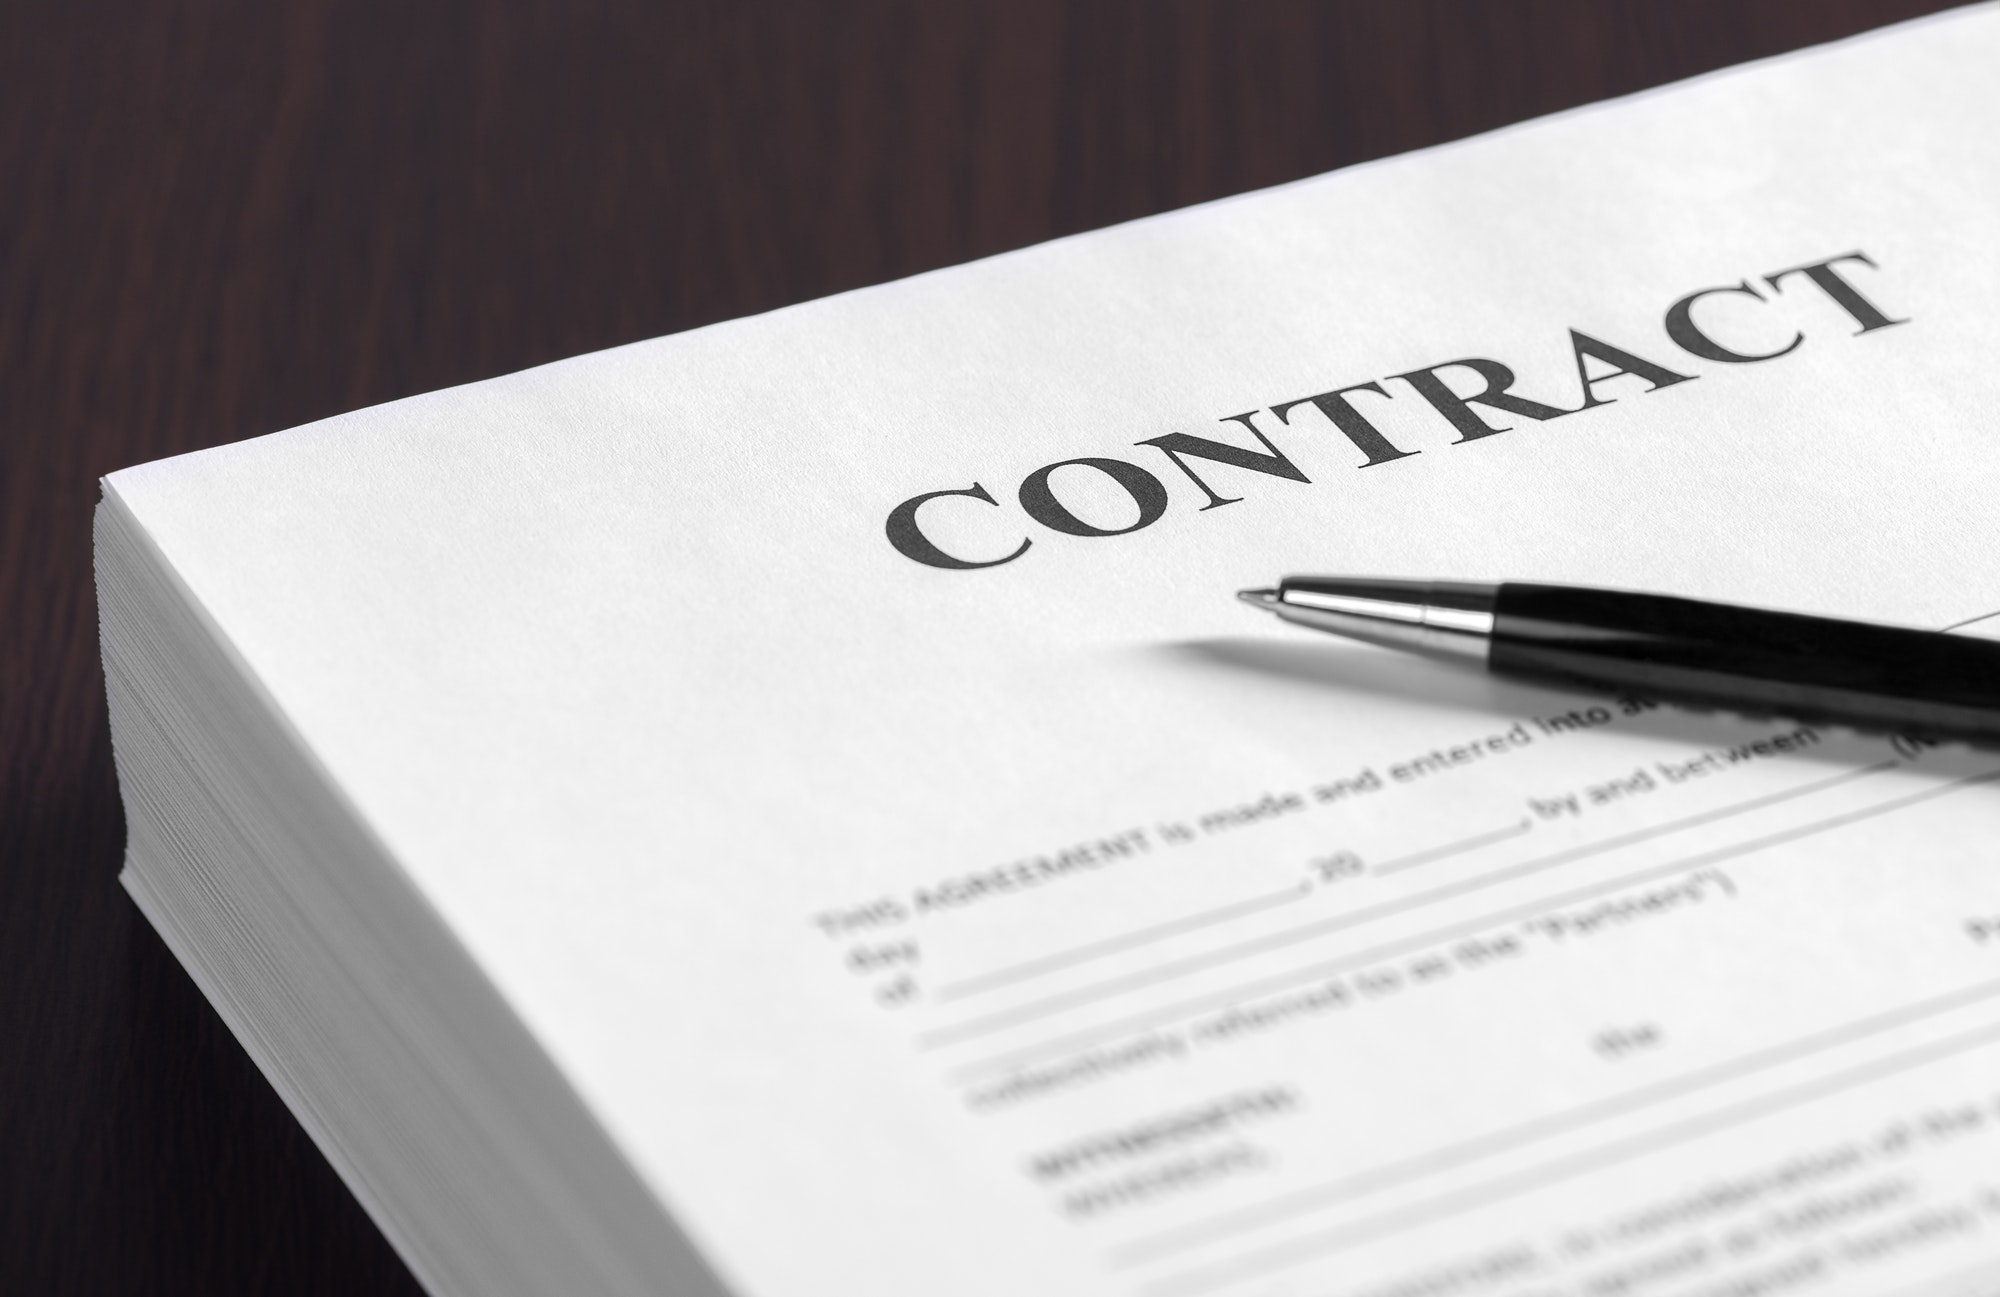 The contract on desktop